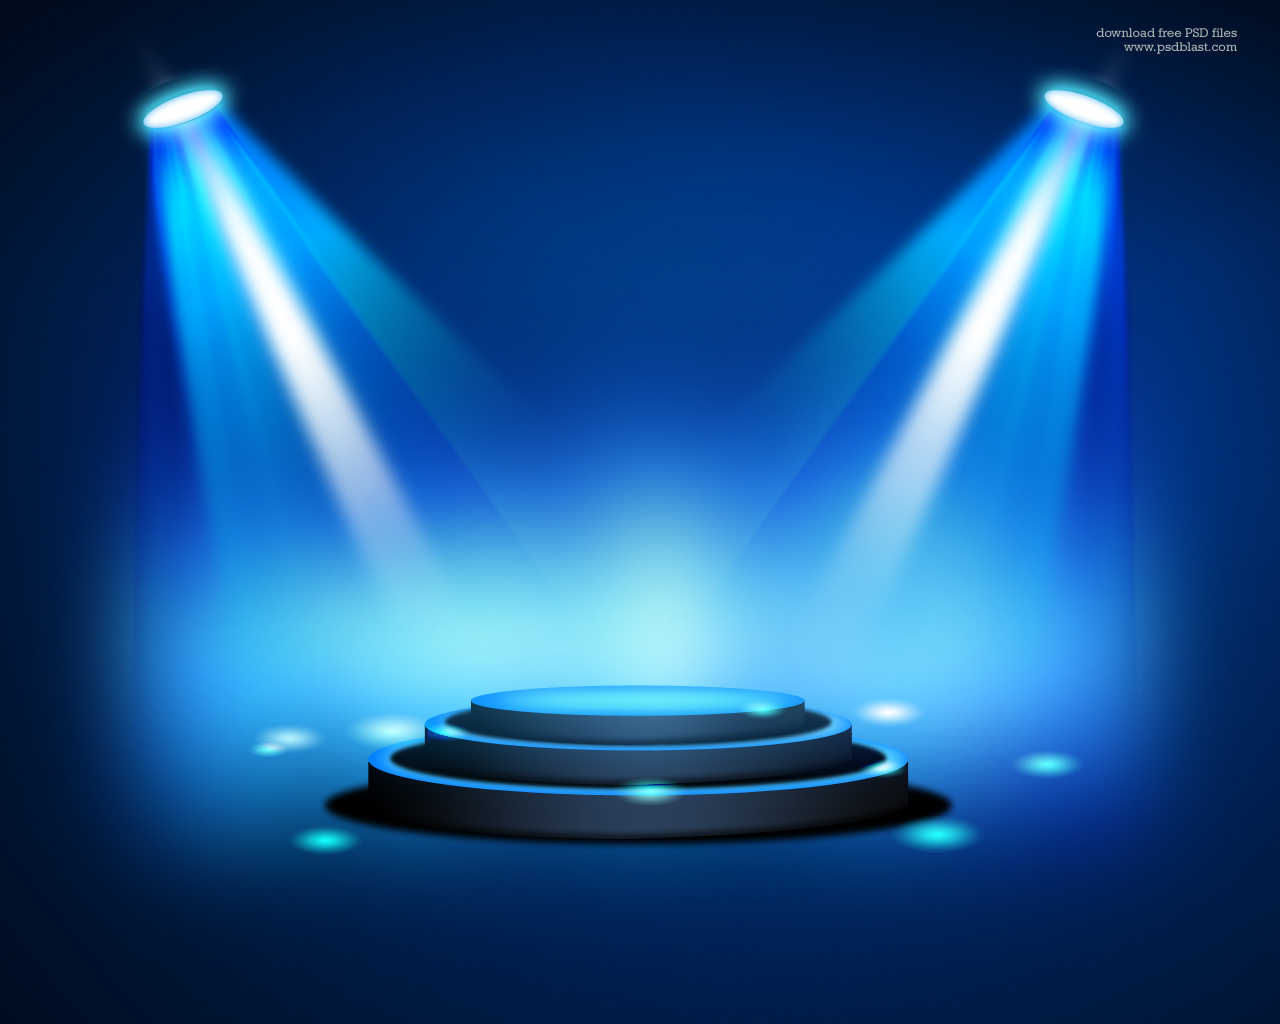 Stage Lighting Background with Spot Light Effects (PSD) | Psdblast for Spotlight Effect Stage Png  287fsj